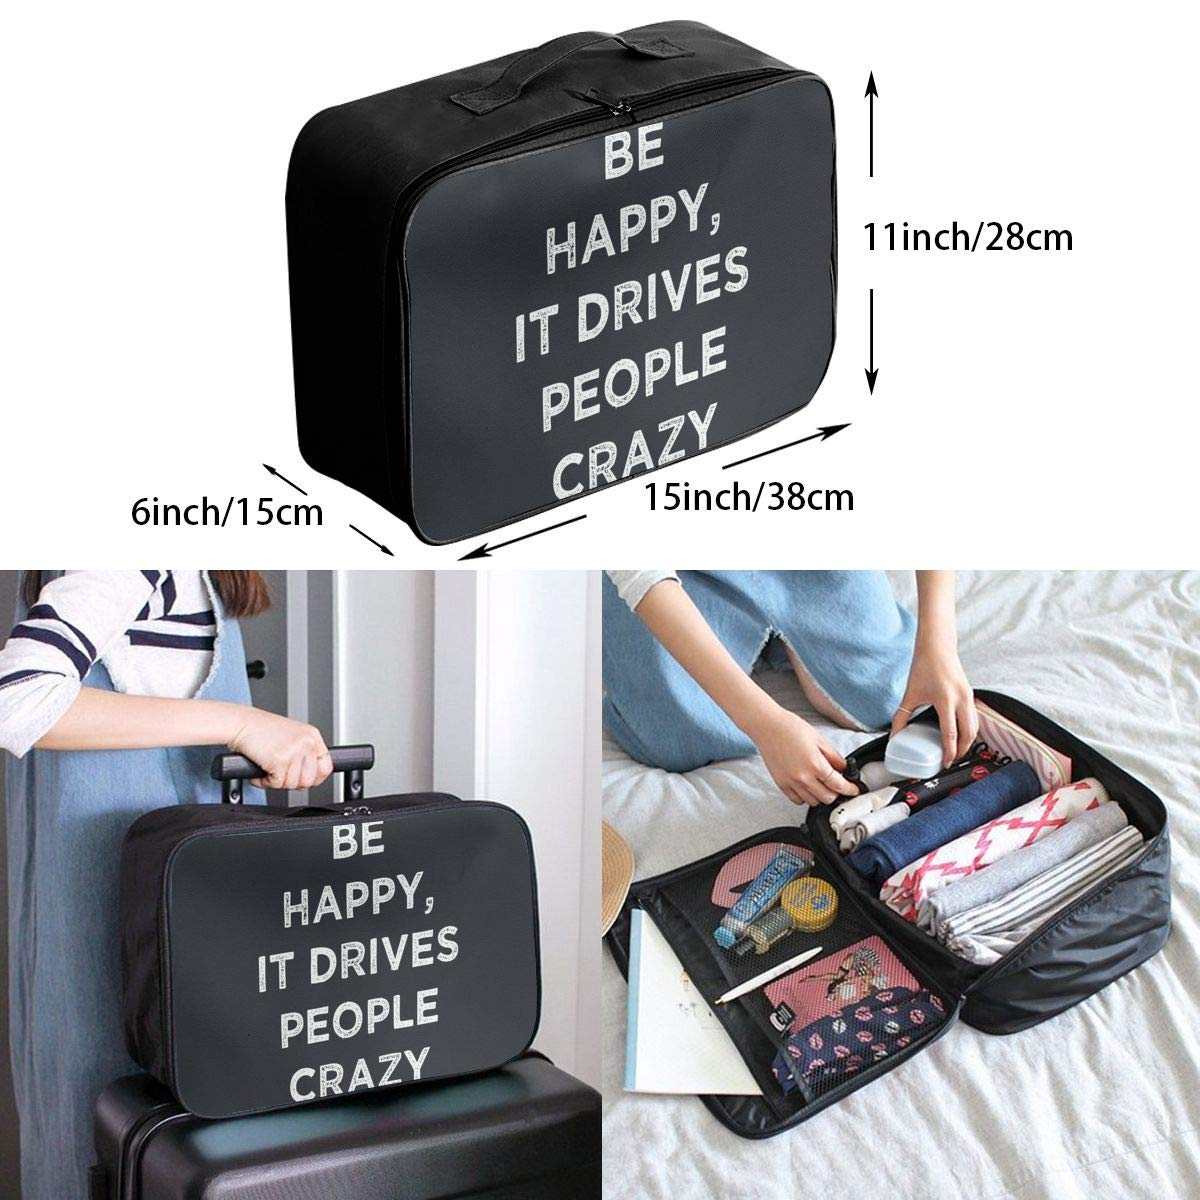 Travel Luggage Duffle Bag Lightweight Portable Handbag Be Happy Large Capacity Waterproof Foldable Storage Tote